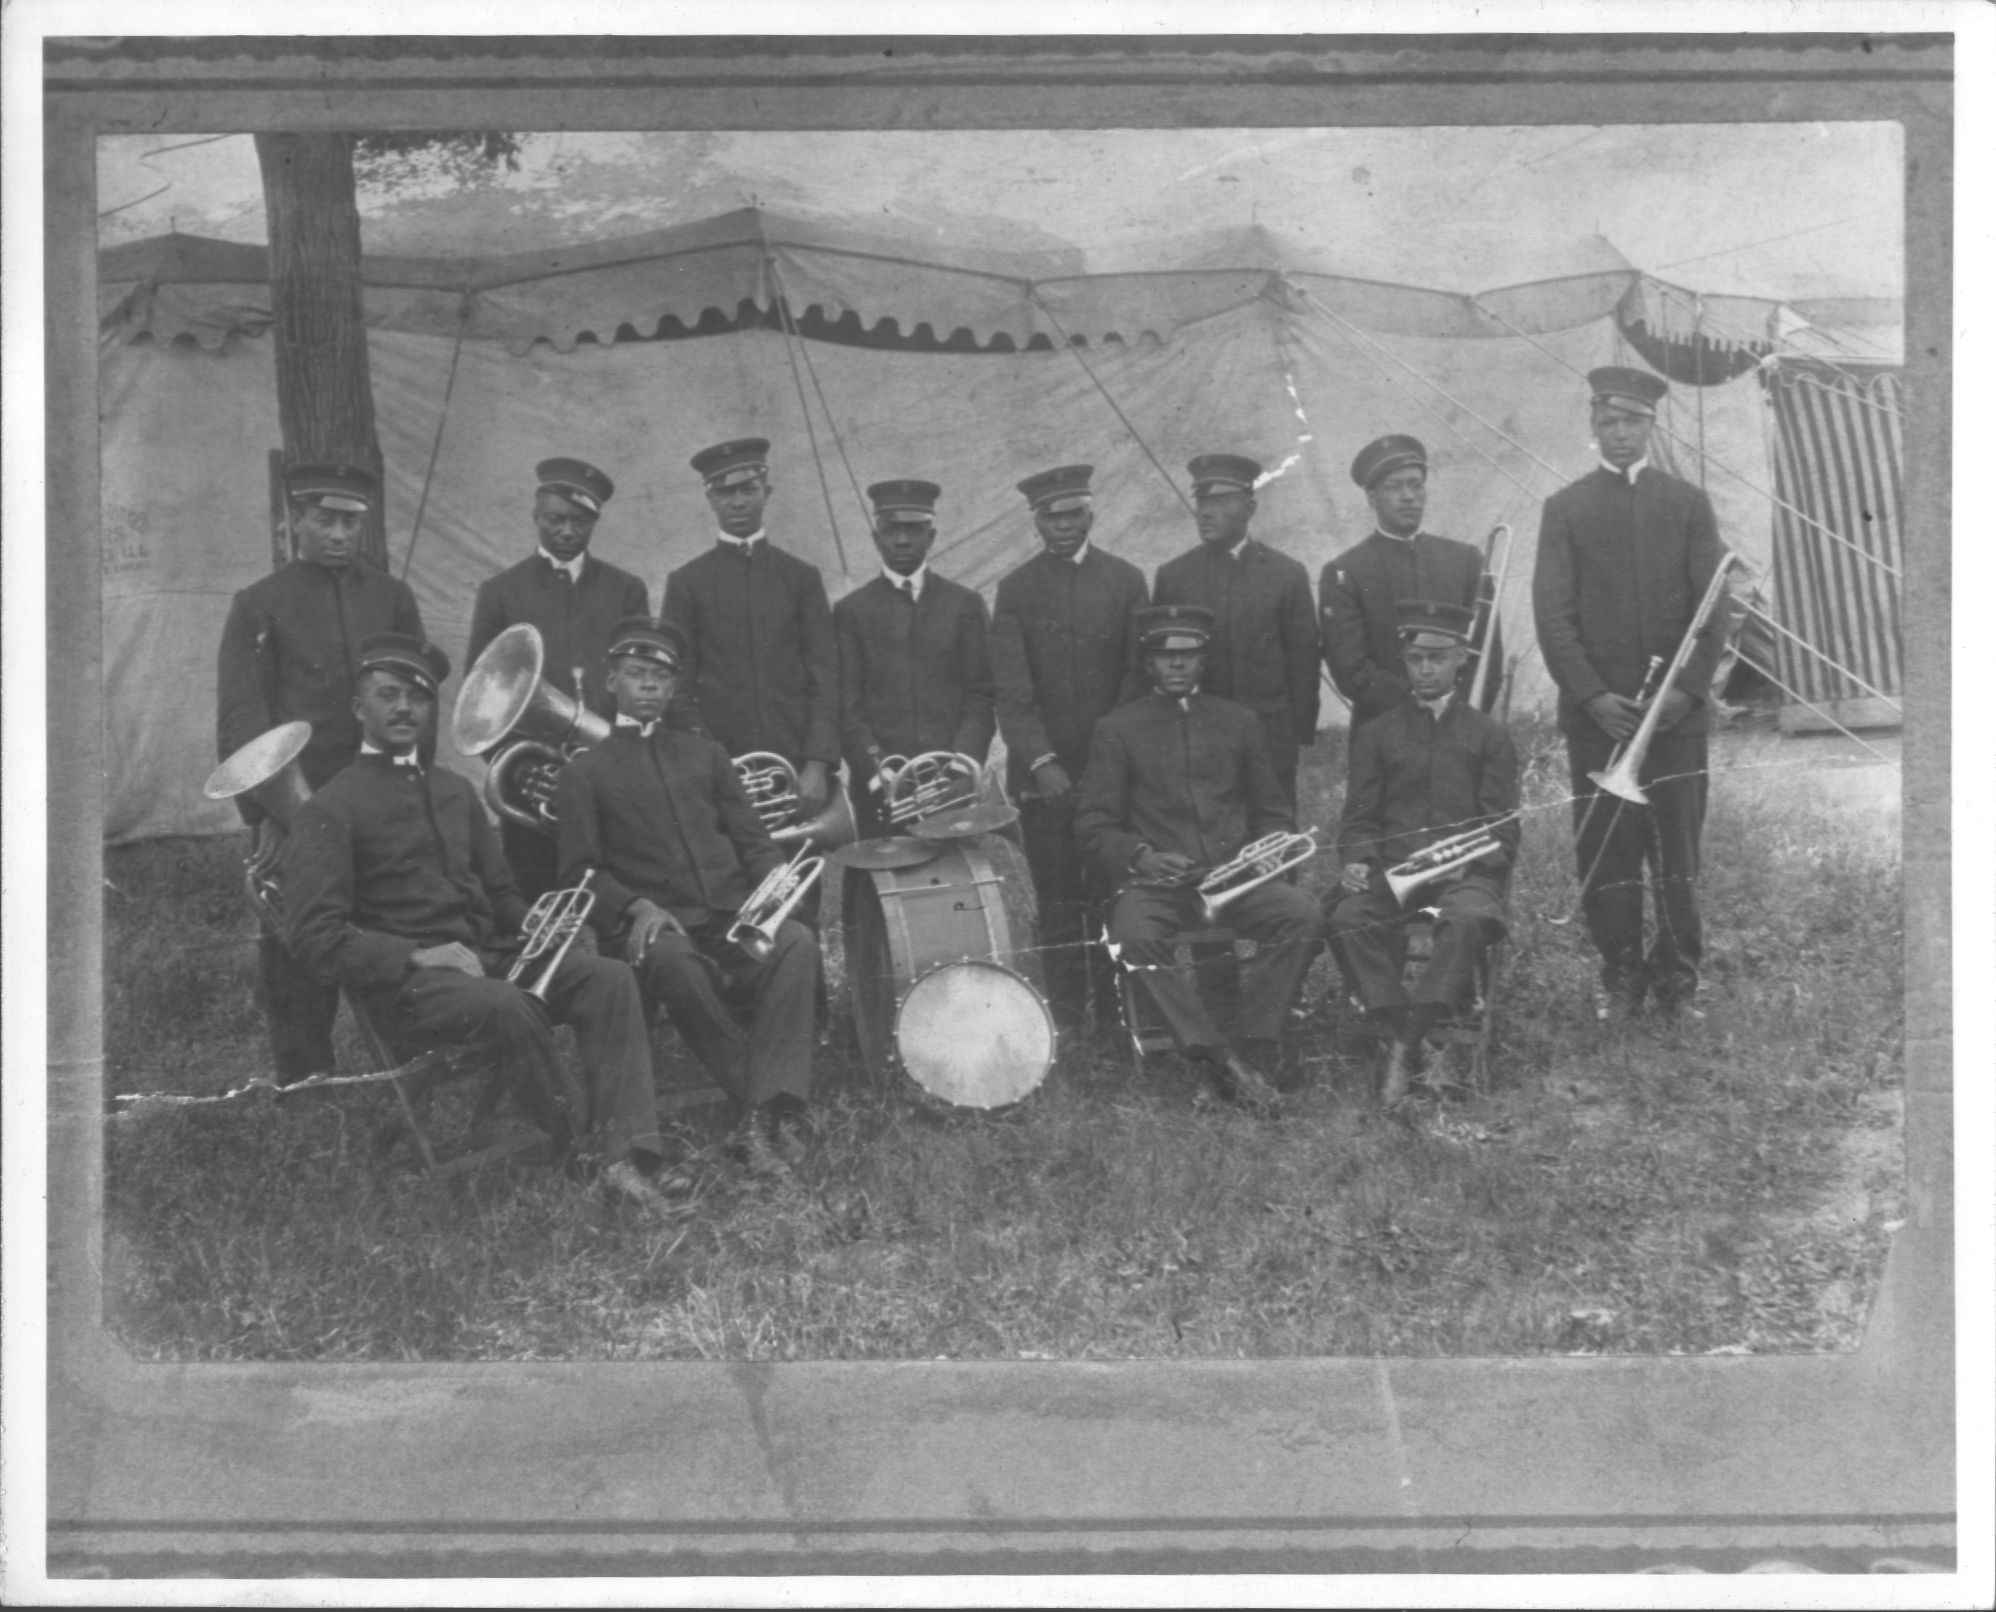 roy-pope-ringling-annex-band